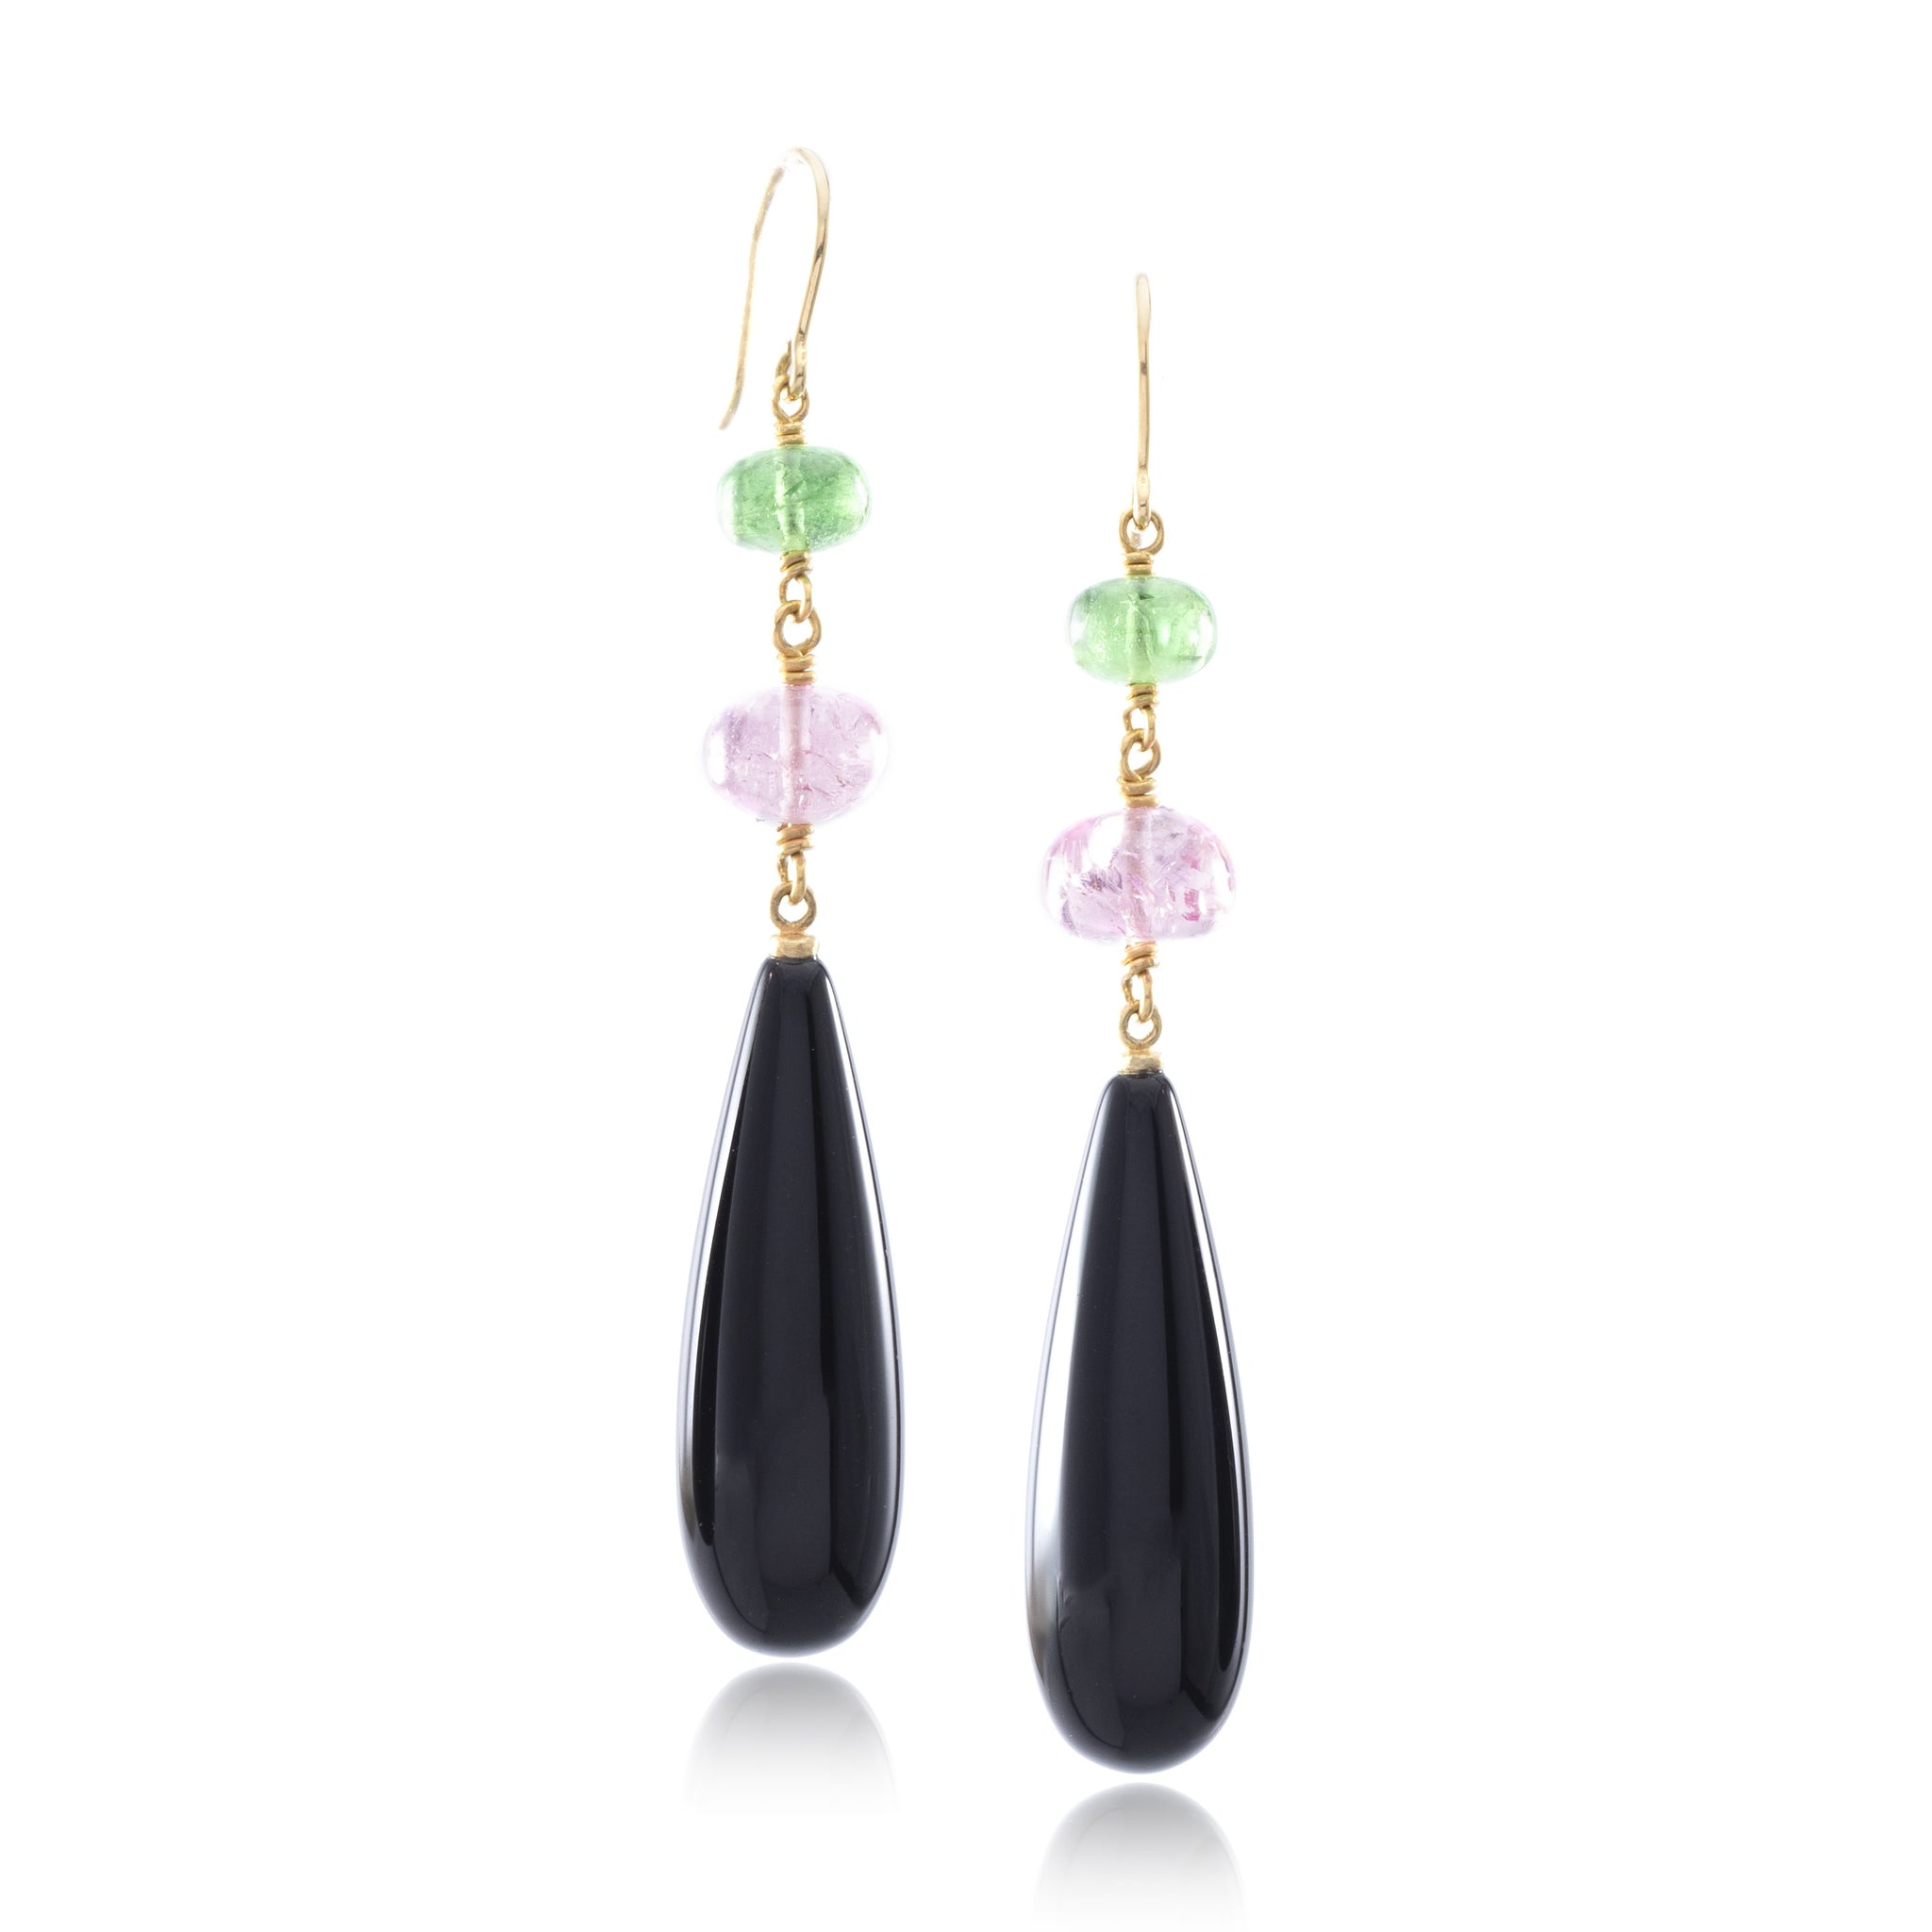 22K and 18K Two-tone Gold Black Onyx Drop Earrings with Cabochon Tsavorite and Cabochon Pink Tourmaline Beads